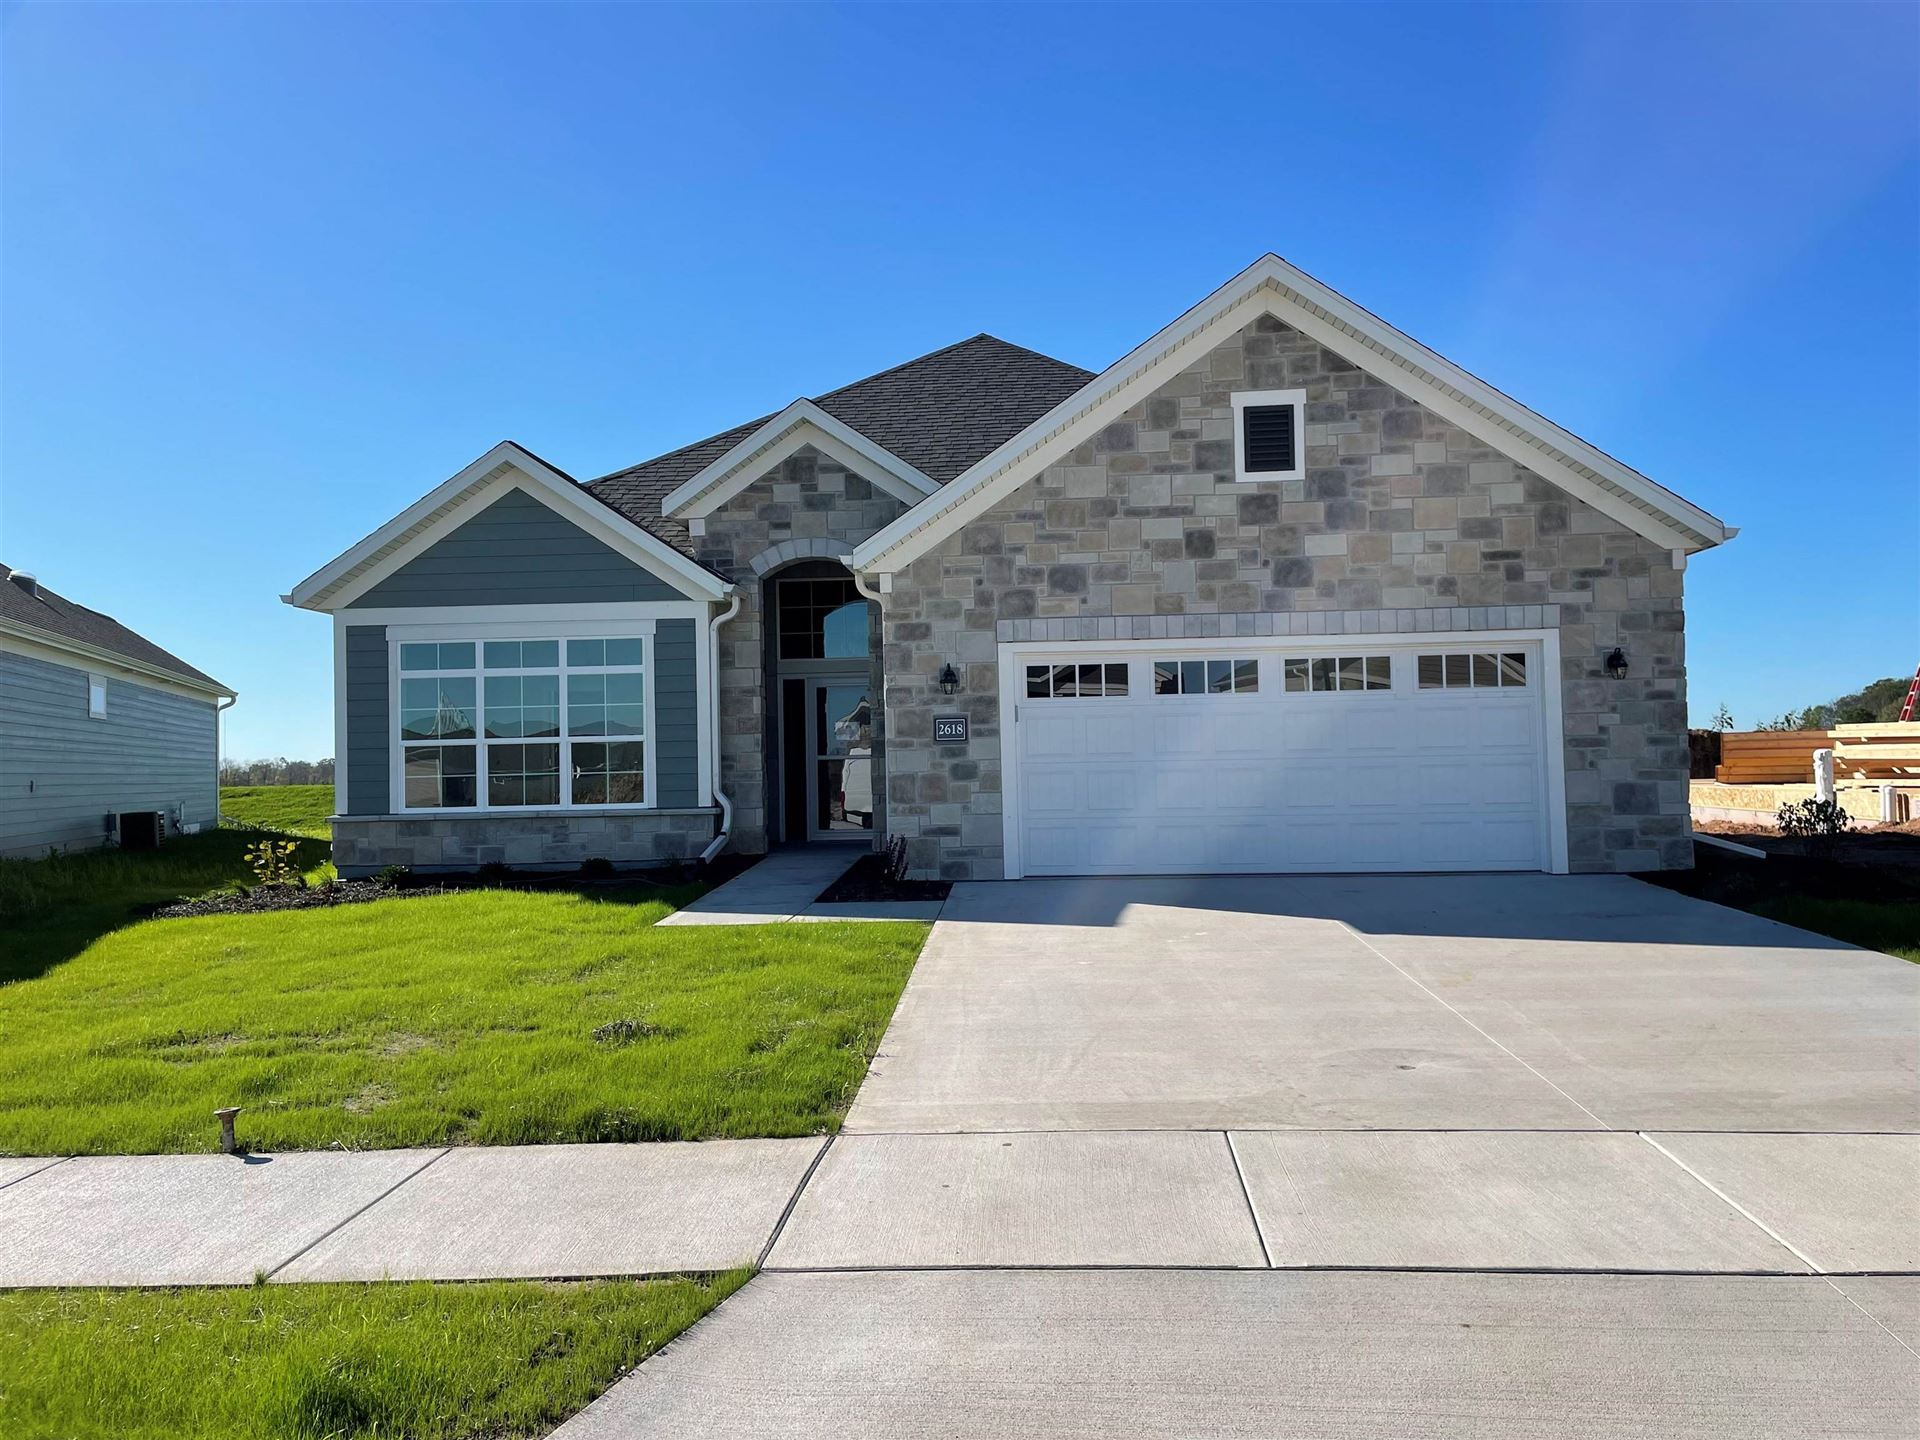 2618 ORION Trail, Green Bay, WI 54311 - MLS#: 50243410